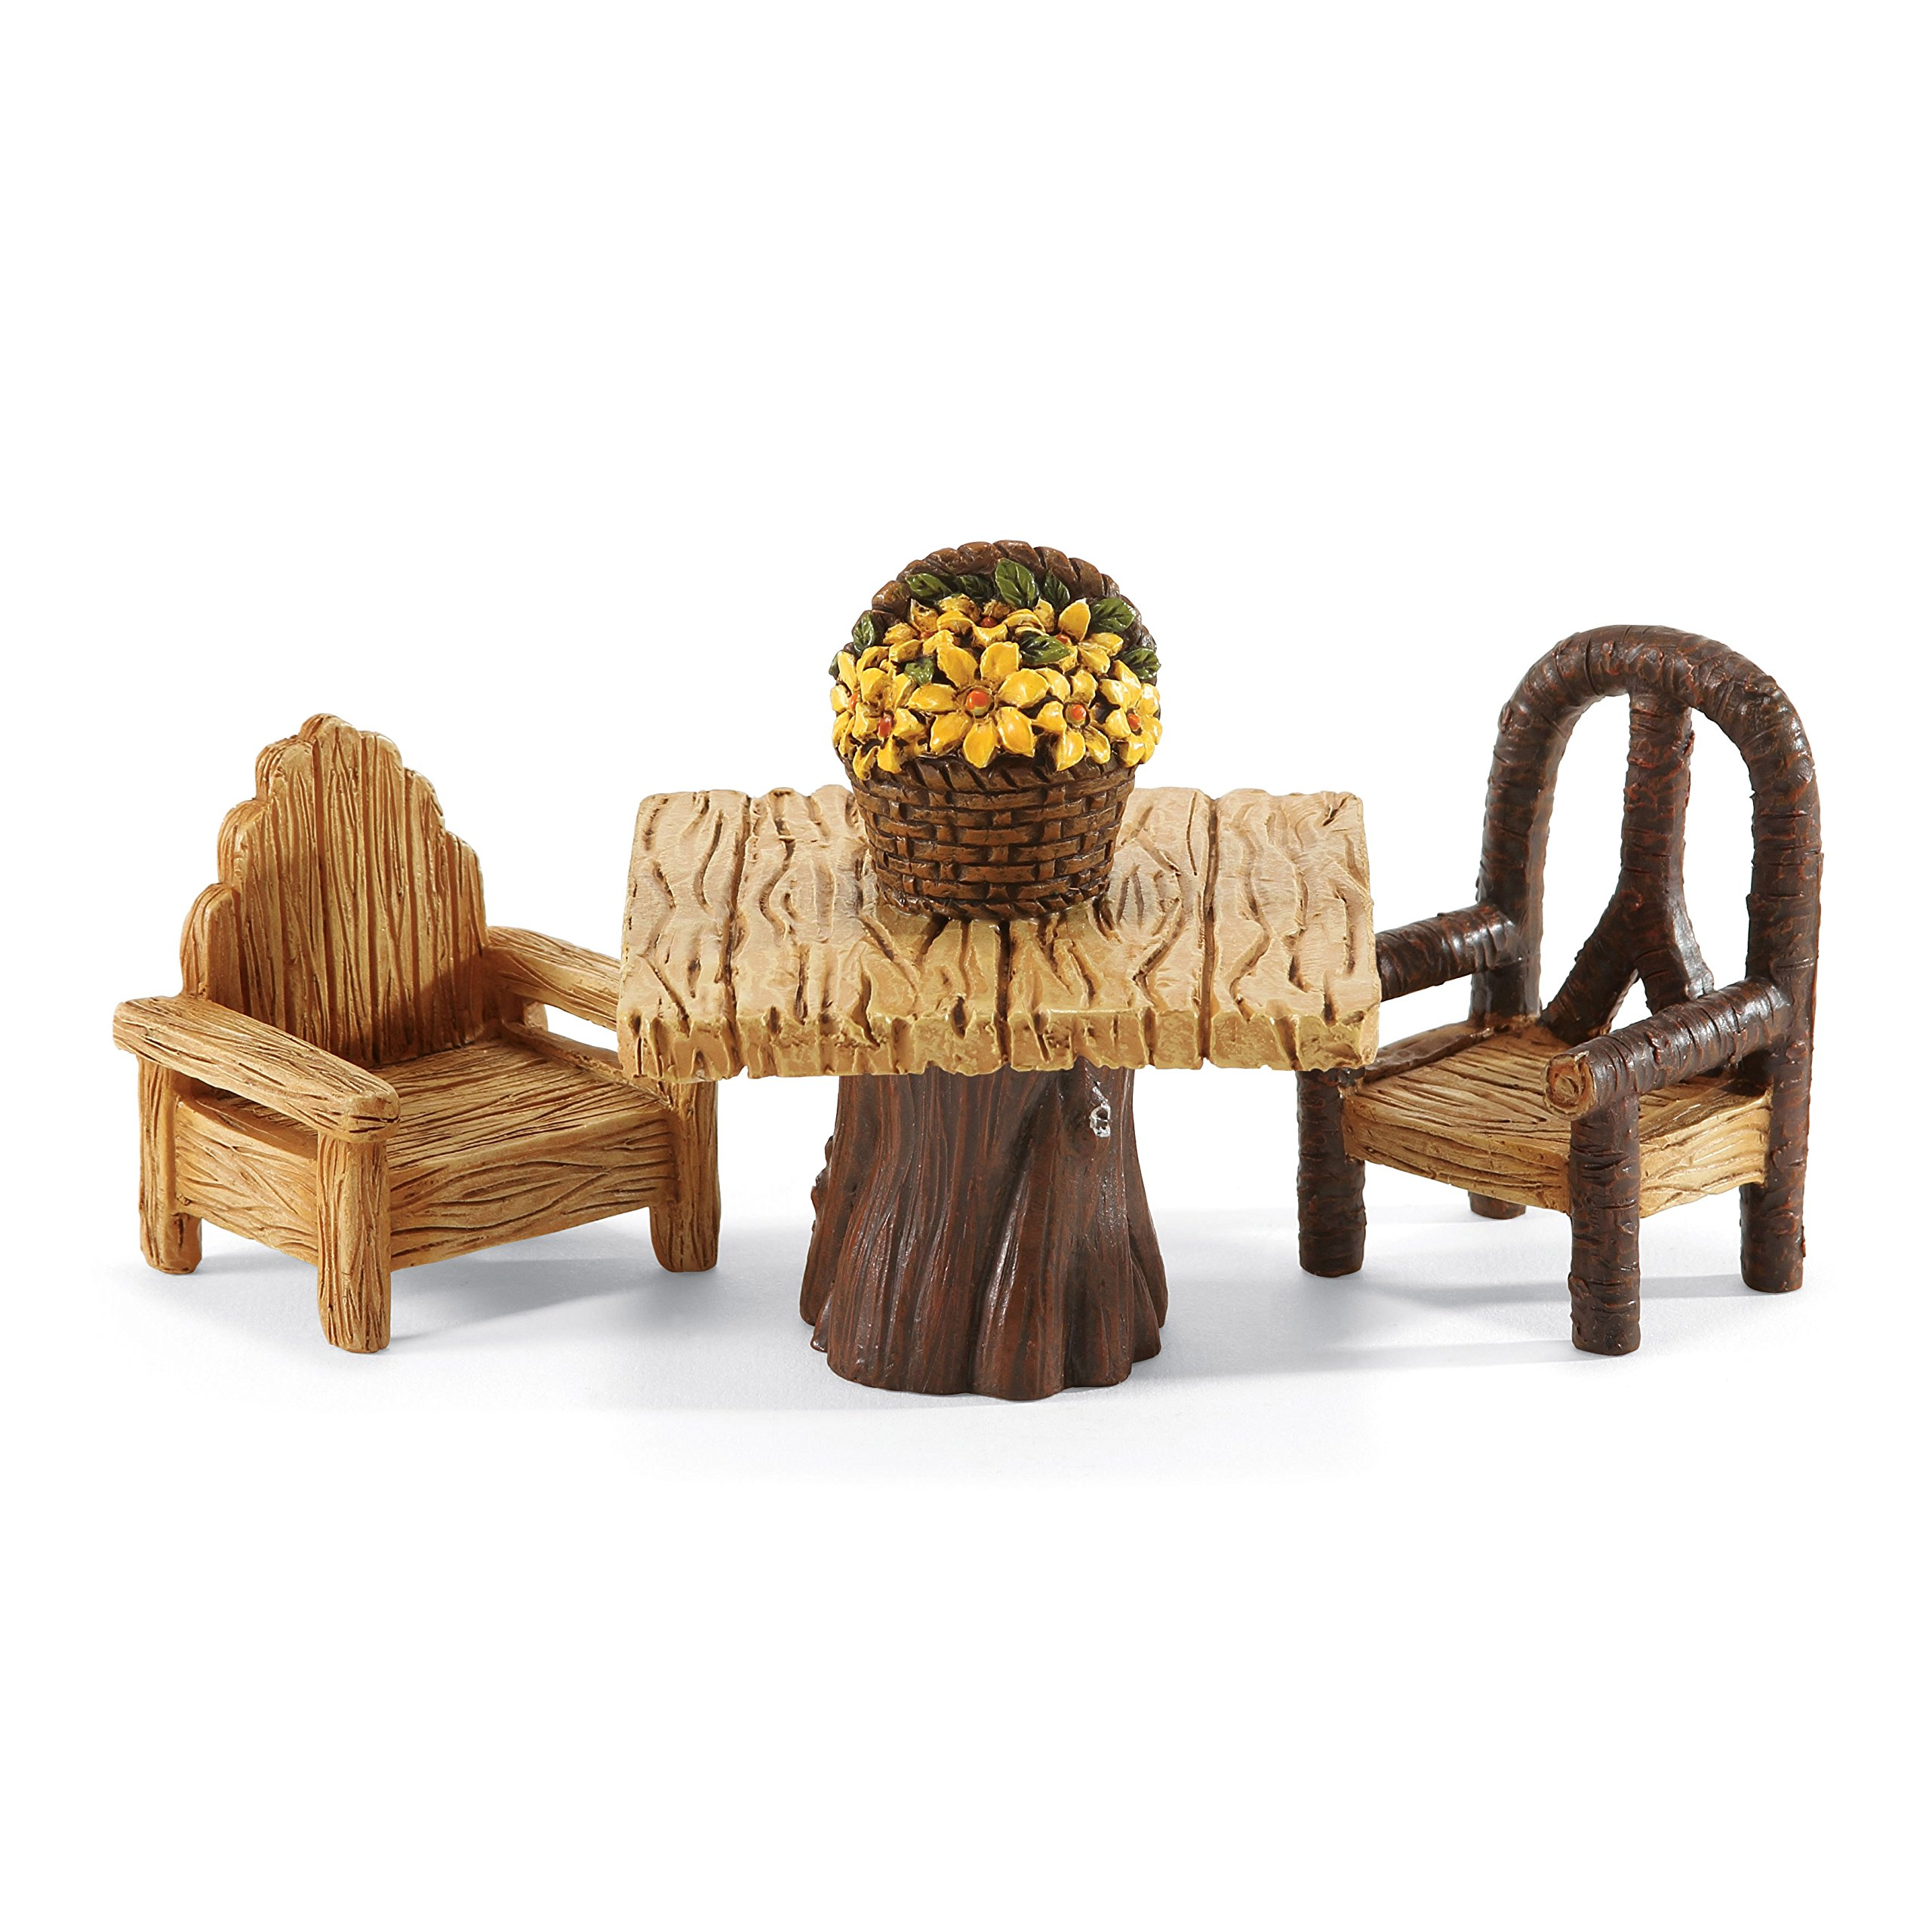 Department 56 Garden Guardians Table and Chair Set, 3''